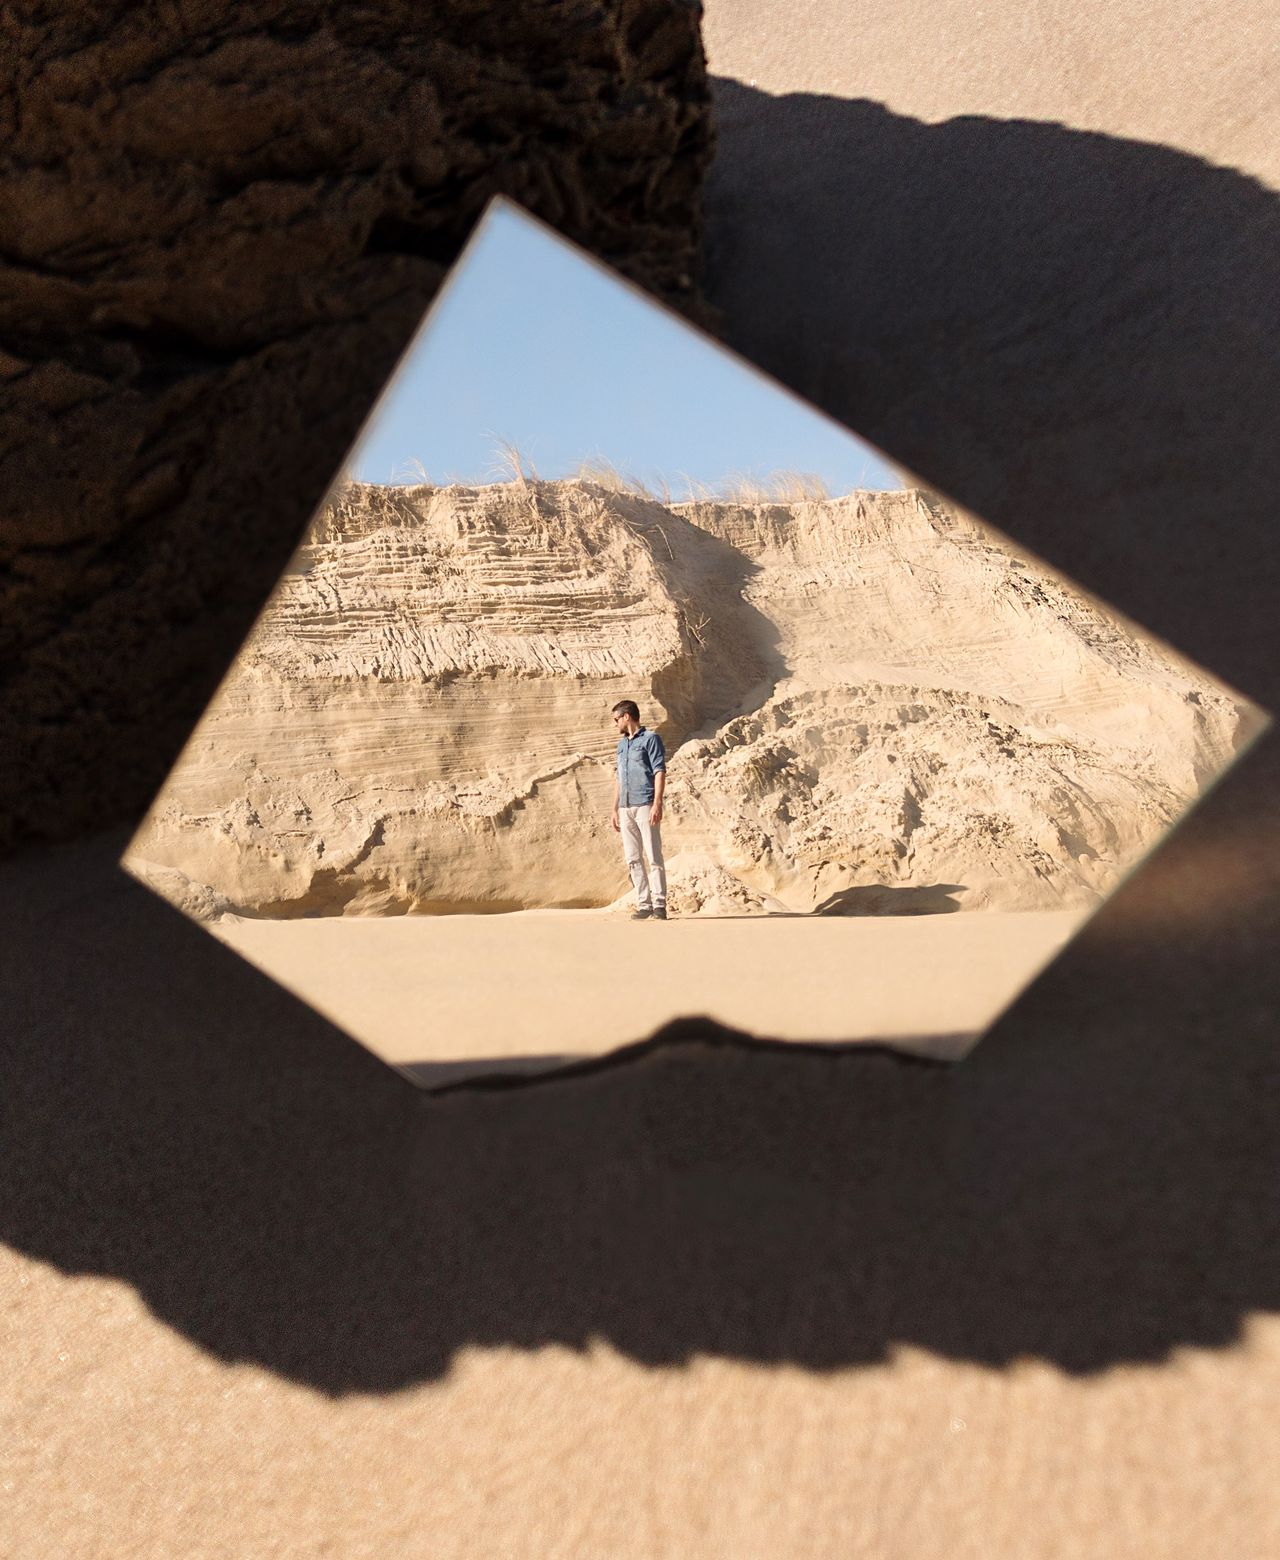 shadow Sunlight Desert sand one person arid climate real people sand dune outdoors lifestyles Nature TheWeekOnEyeEM The Week on EyeEm Reflection Mirror mirror reflection